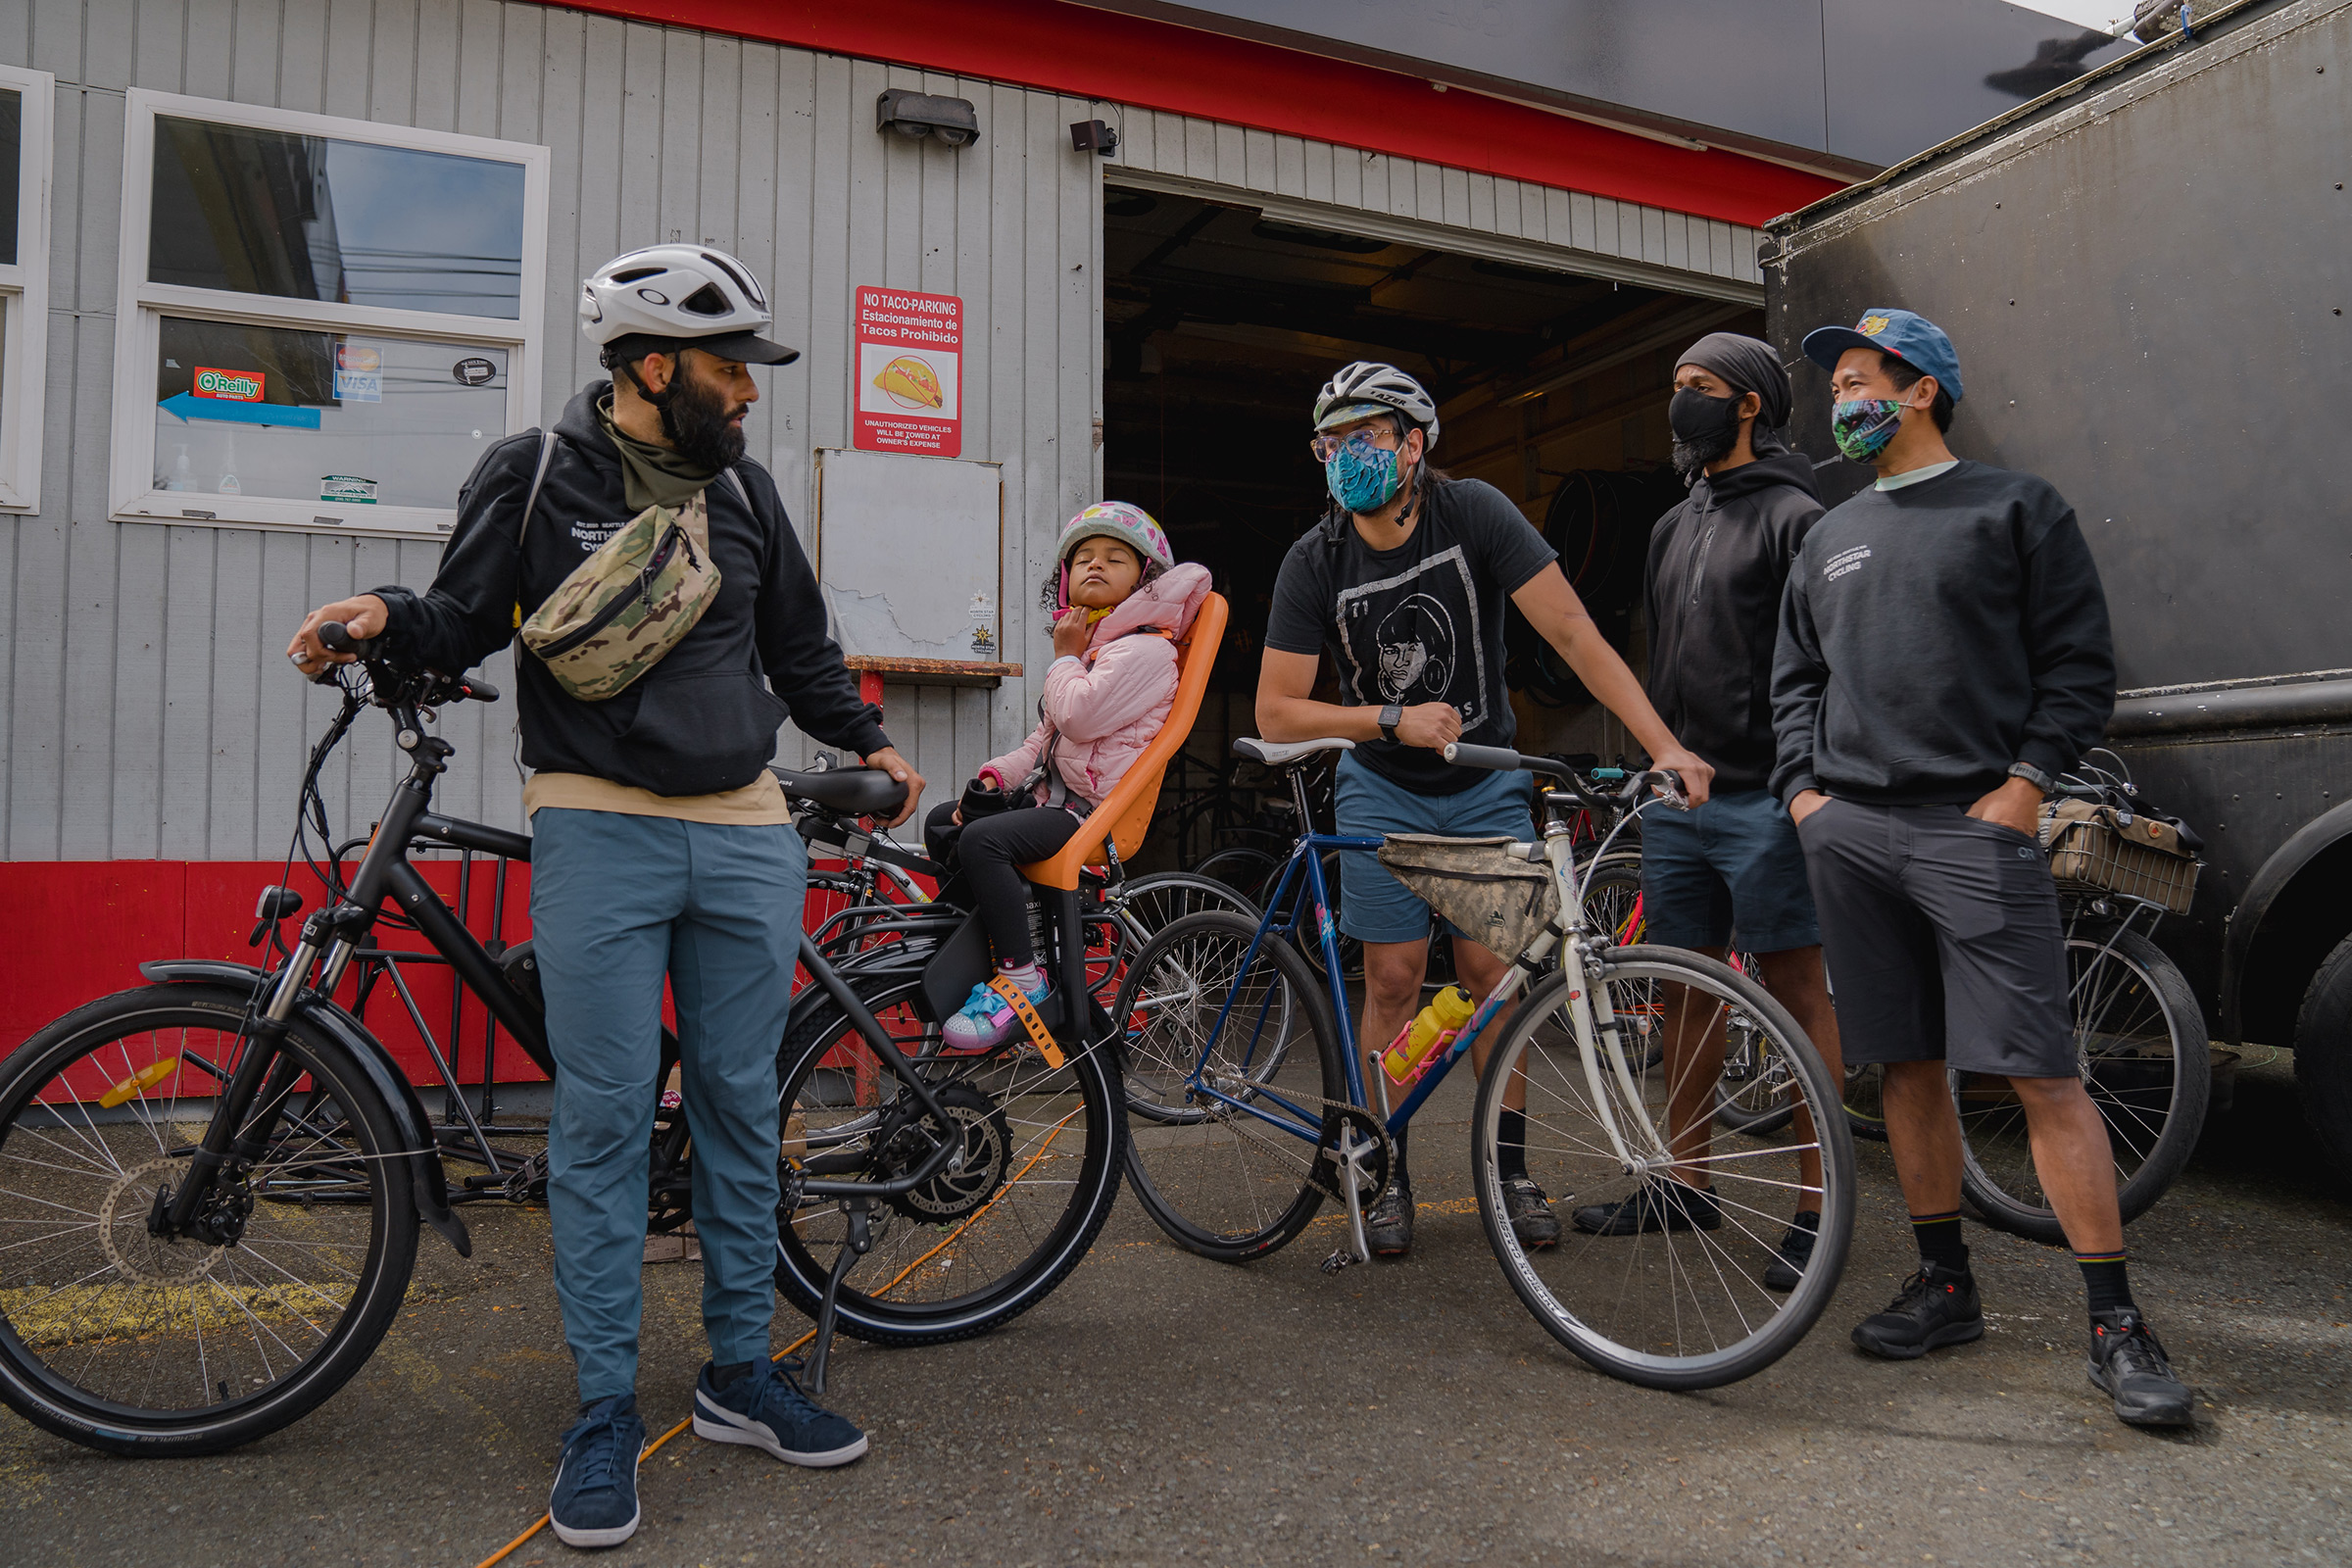 Edwin Lindo, left, co-founder of the NorthStar Cycling Club, discusses potential routes for the club's weekly ride around Seattle.